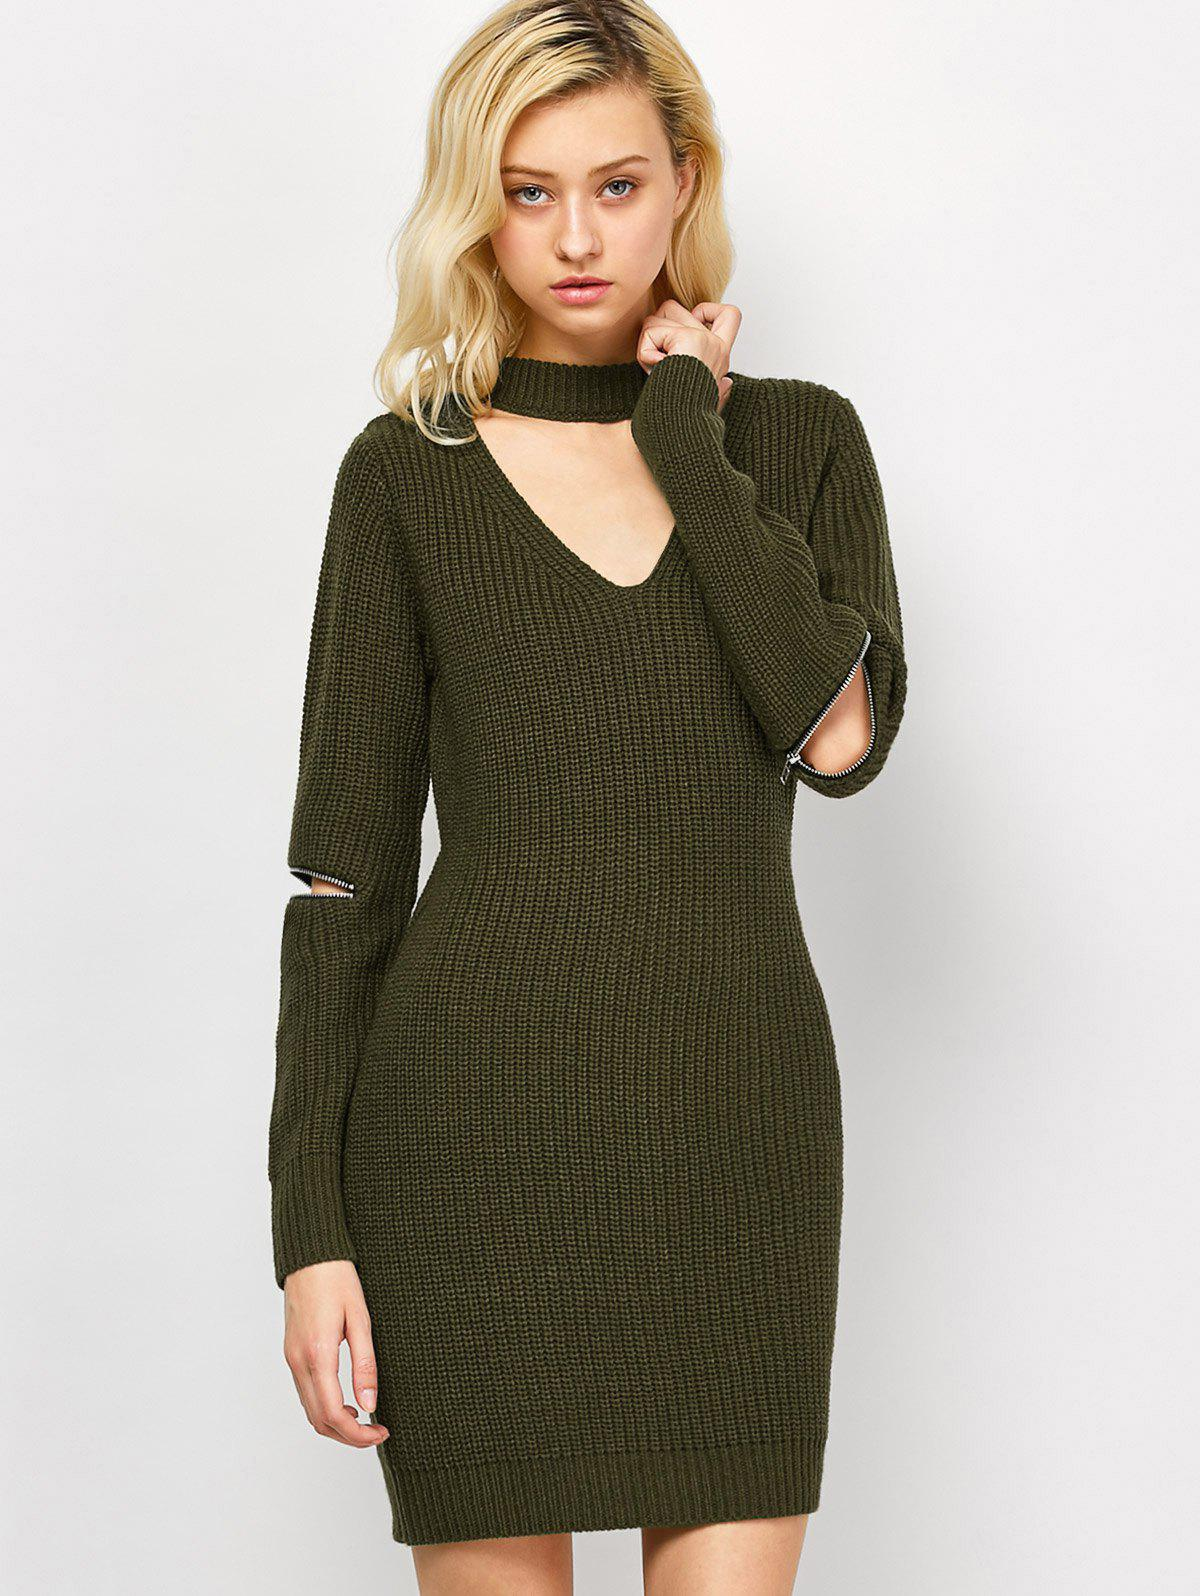 Chic Choker Neck Short Sheath Fitted Sweater Dress